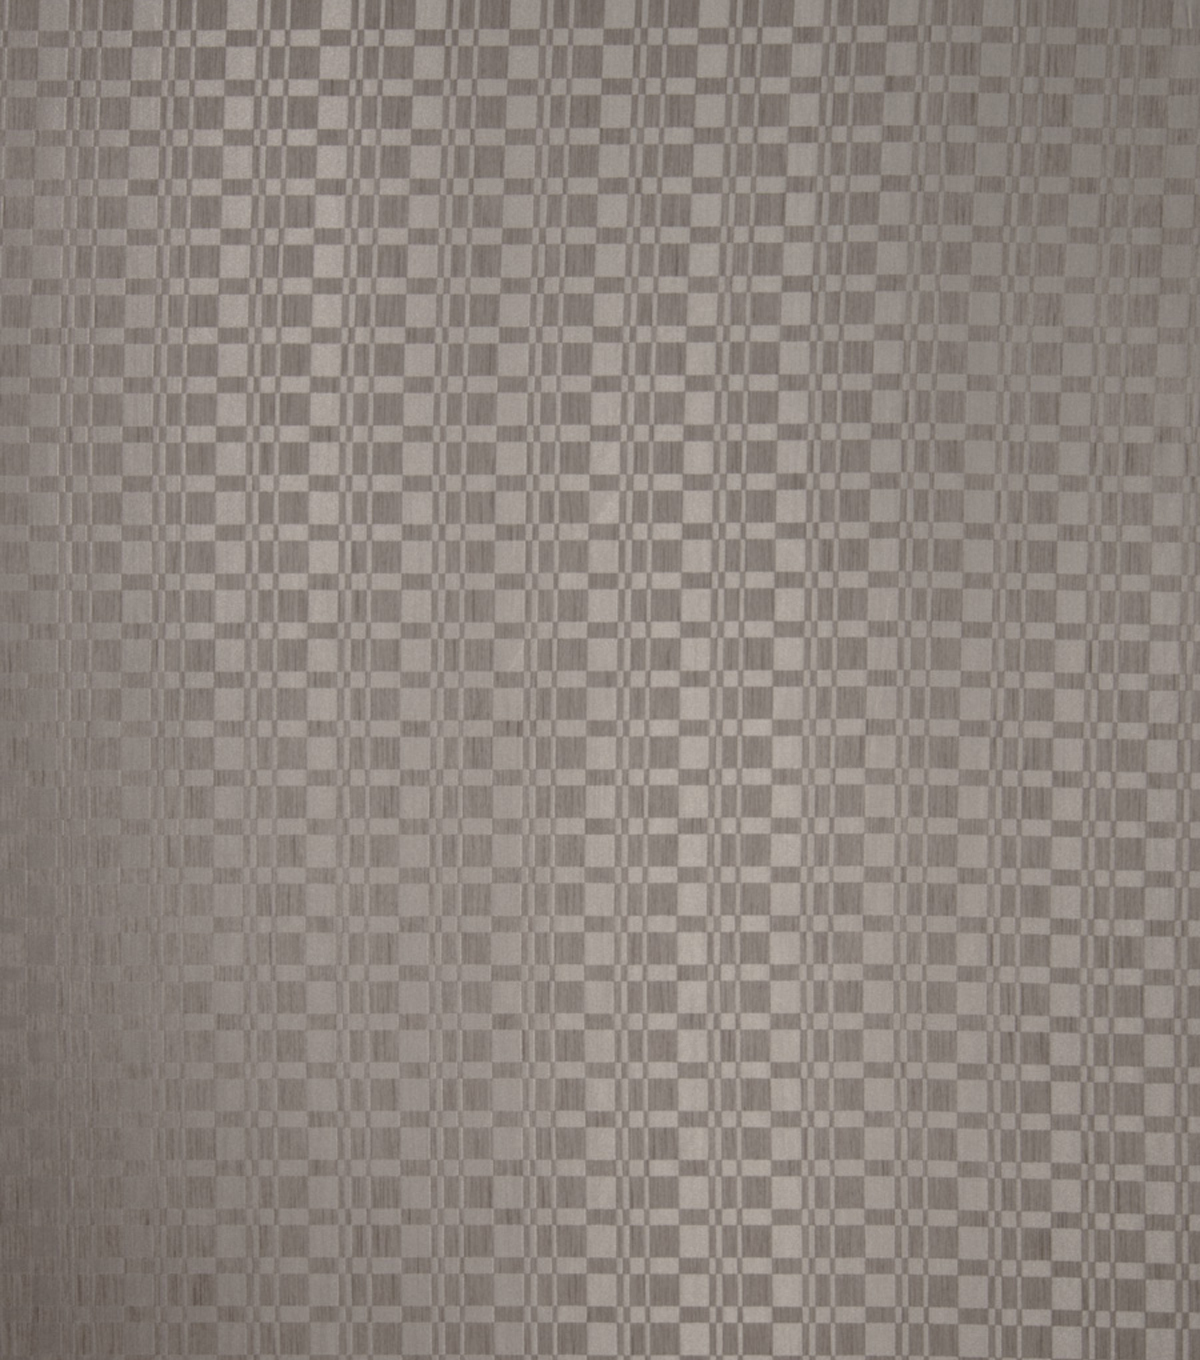 8\u0027\u0027x8\u0027\u0027 Home Decor Fabric Swatch-Solid Fabric Eaton Square Ethical Dove